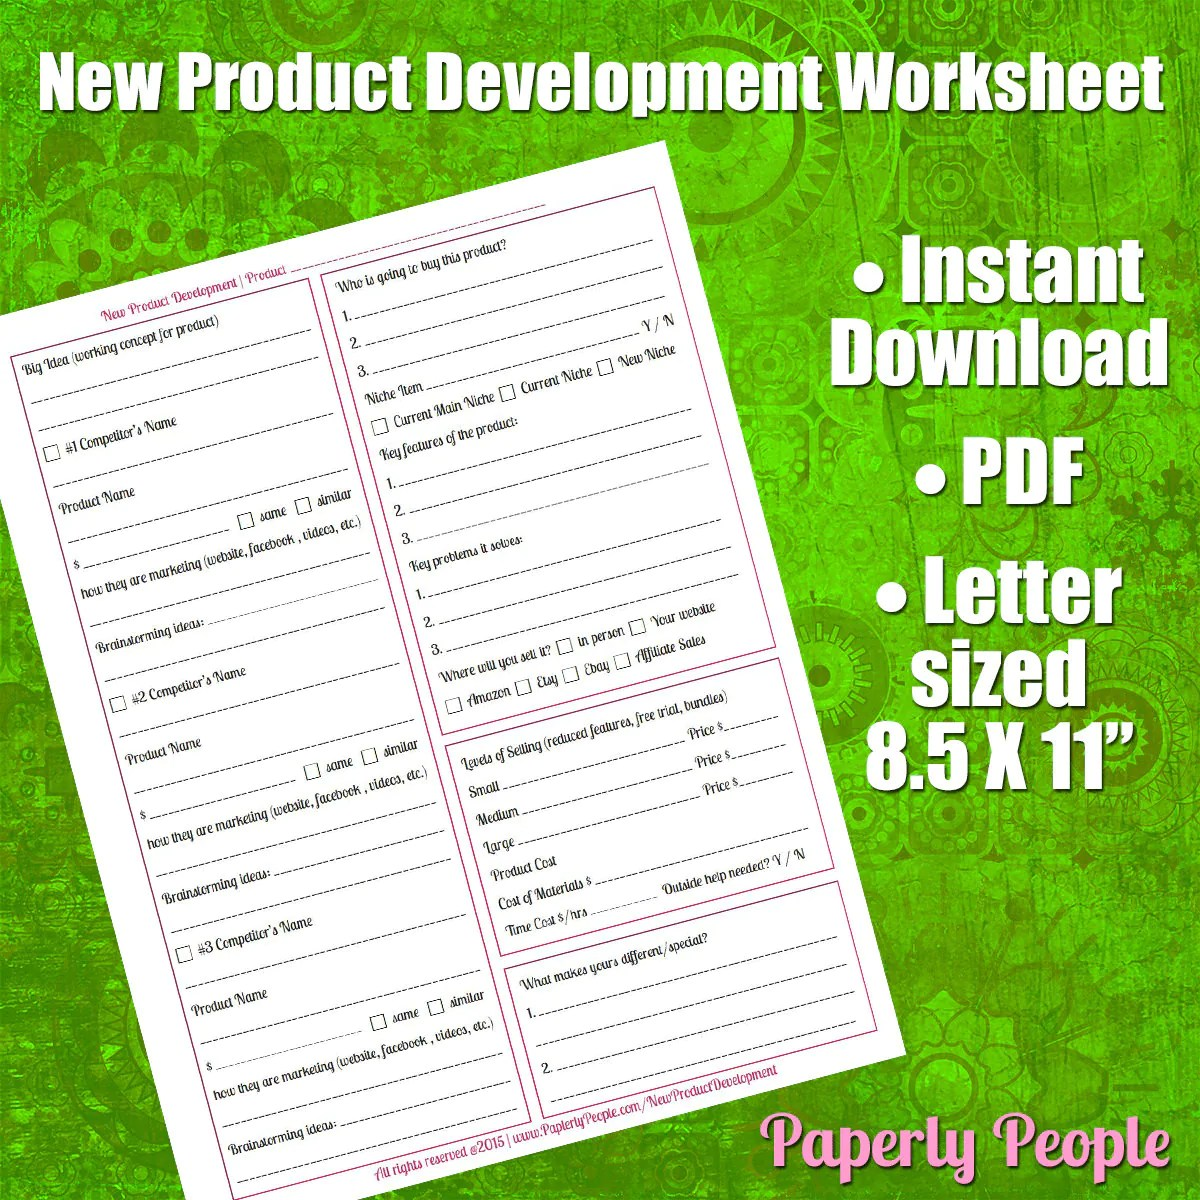 Product Development Worksheet Scope Out New Product Ideas